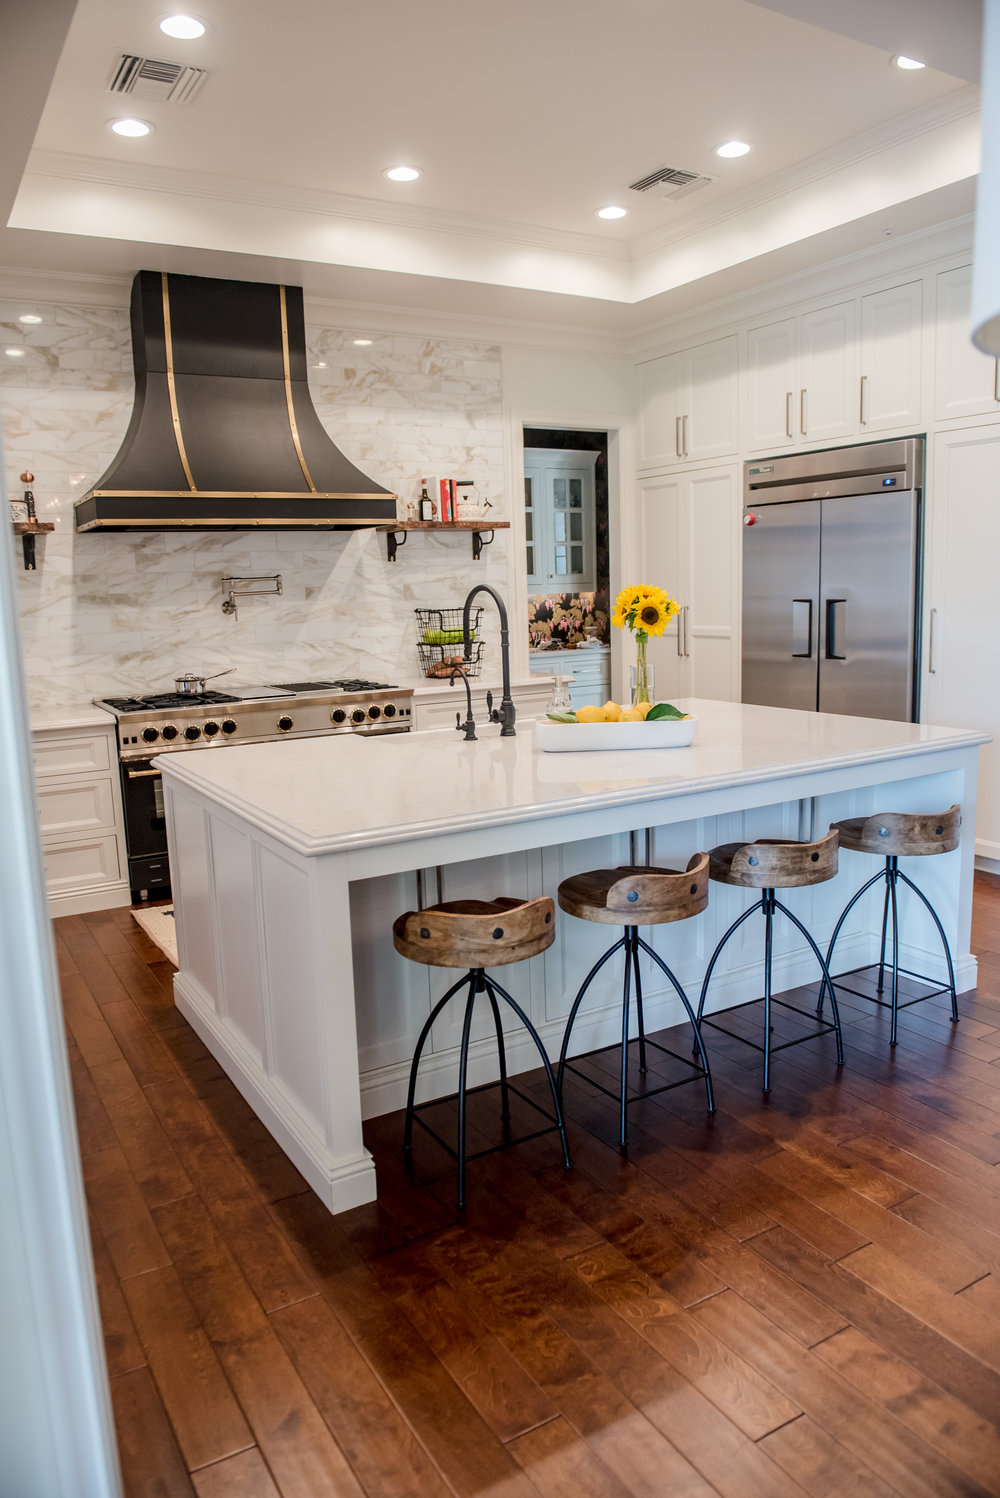 14+Kitchen+CustomHood+Brass+Black+Range+Marble+Calacatta+Openshelves.jpg